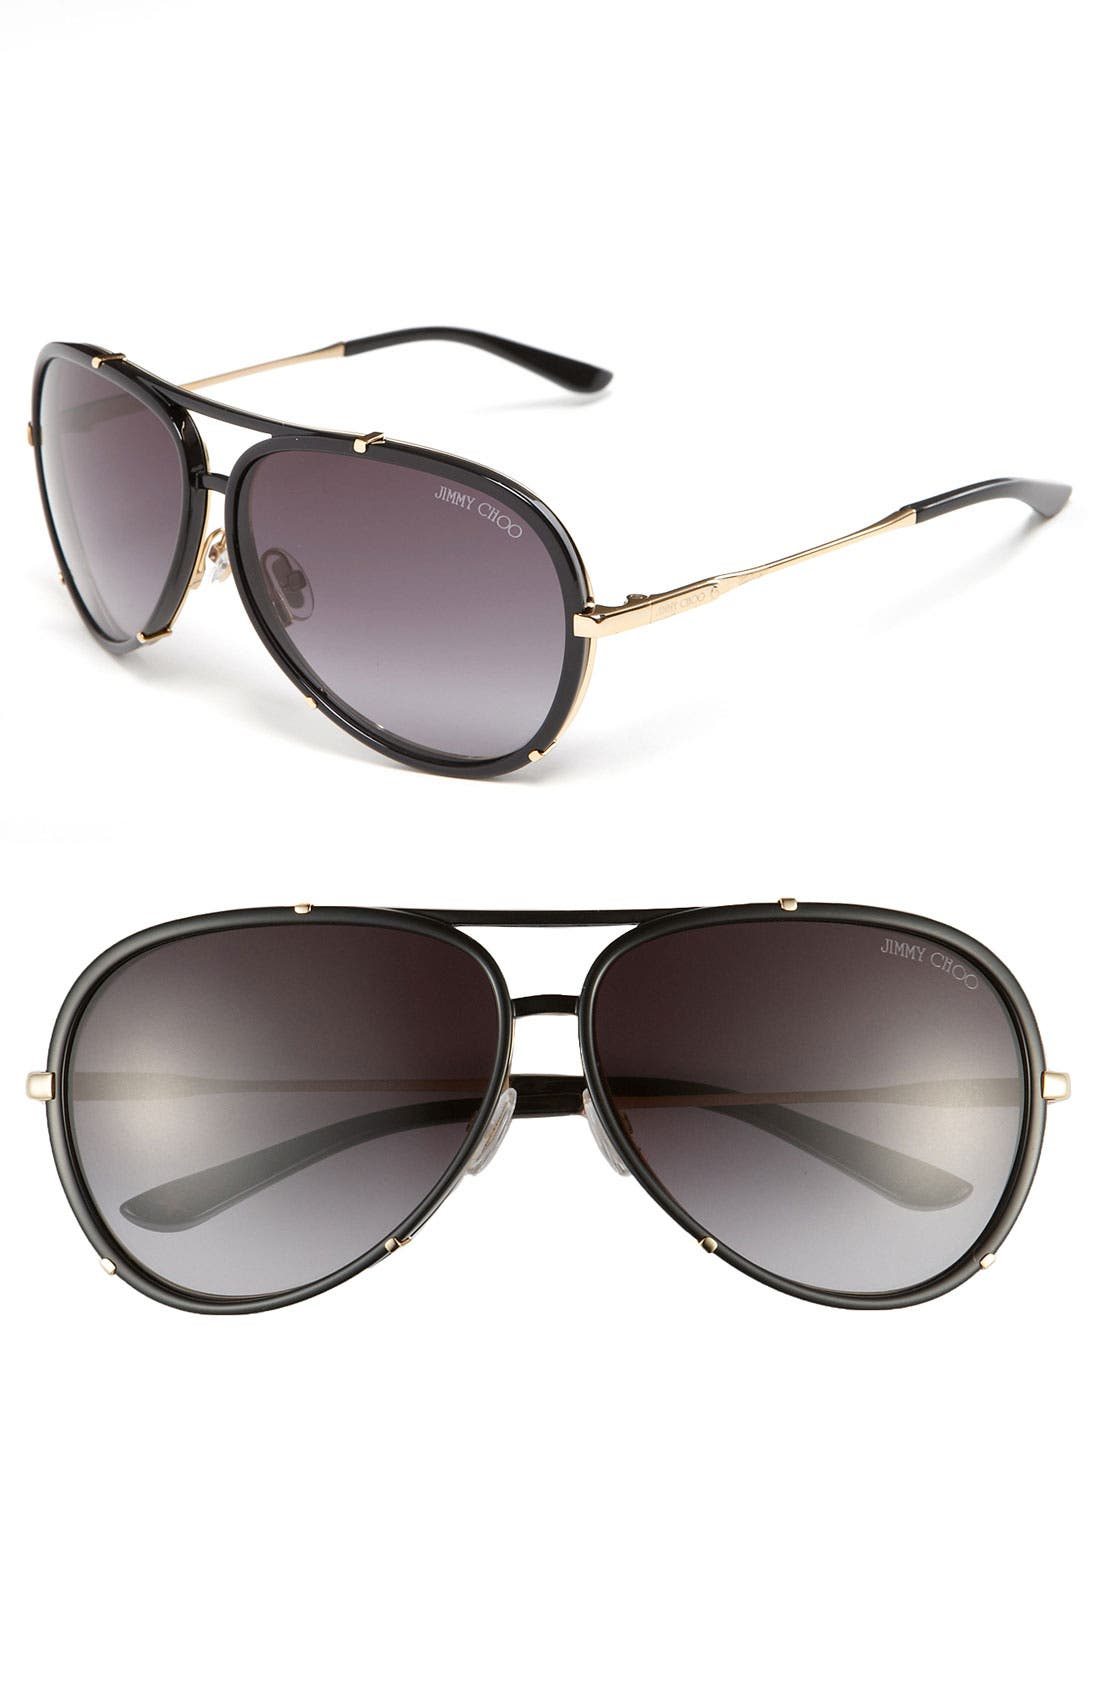 Main Image - Jimmy Choo 'Terrence' 62mm Aviator Sunglasses